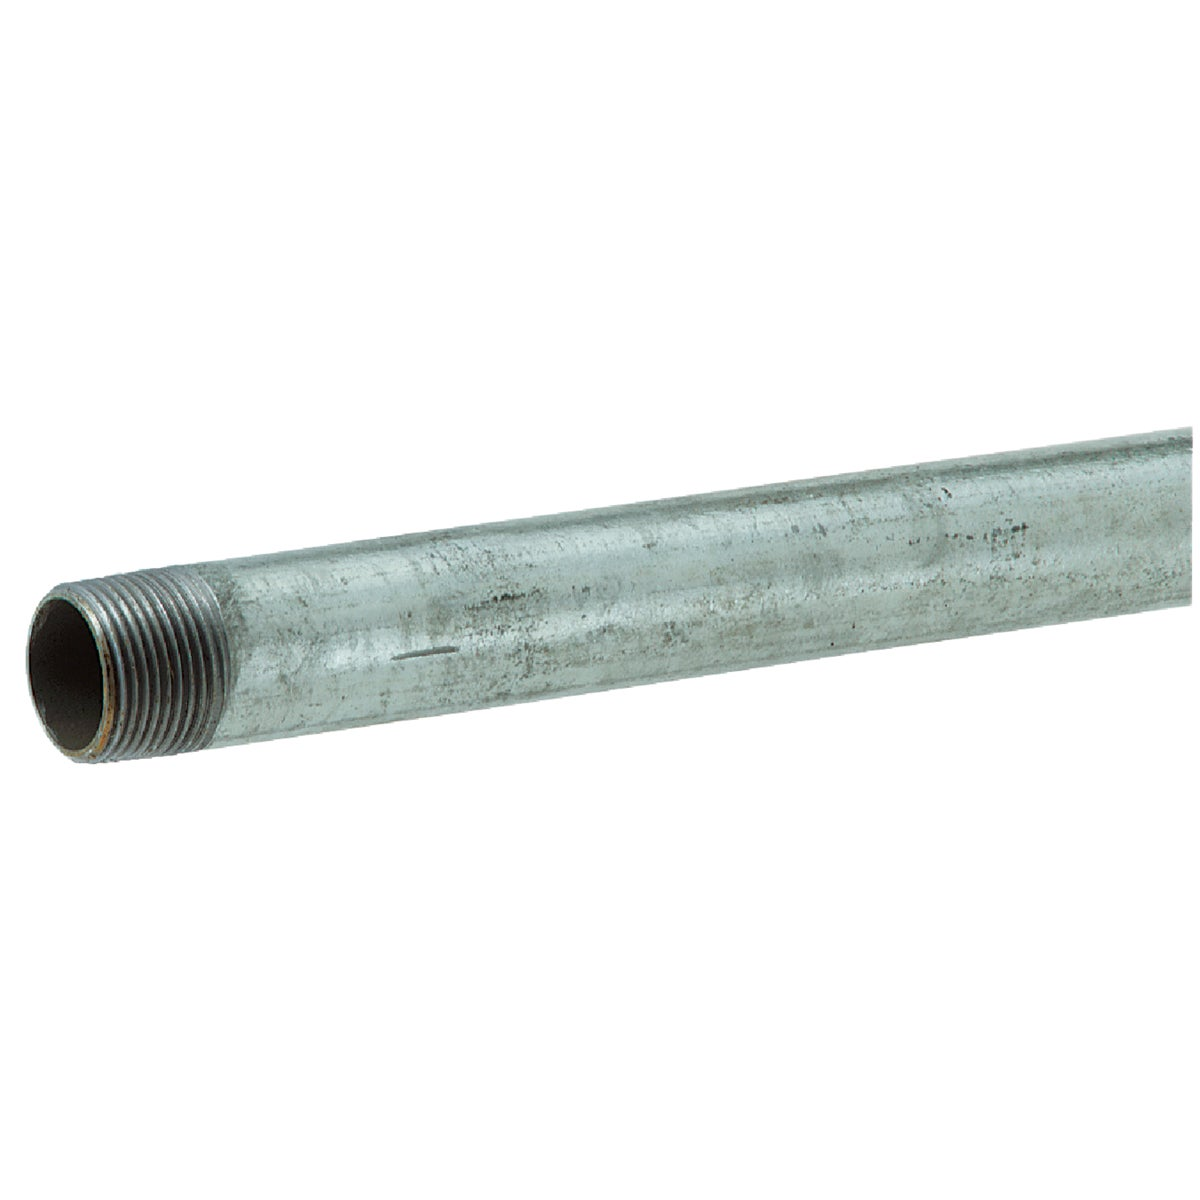 3/4X18 GALV RDI-CT PIPE - 3/4X18 by Southland Pipe Nippl